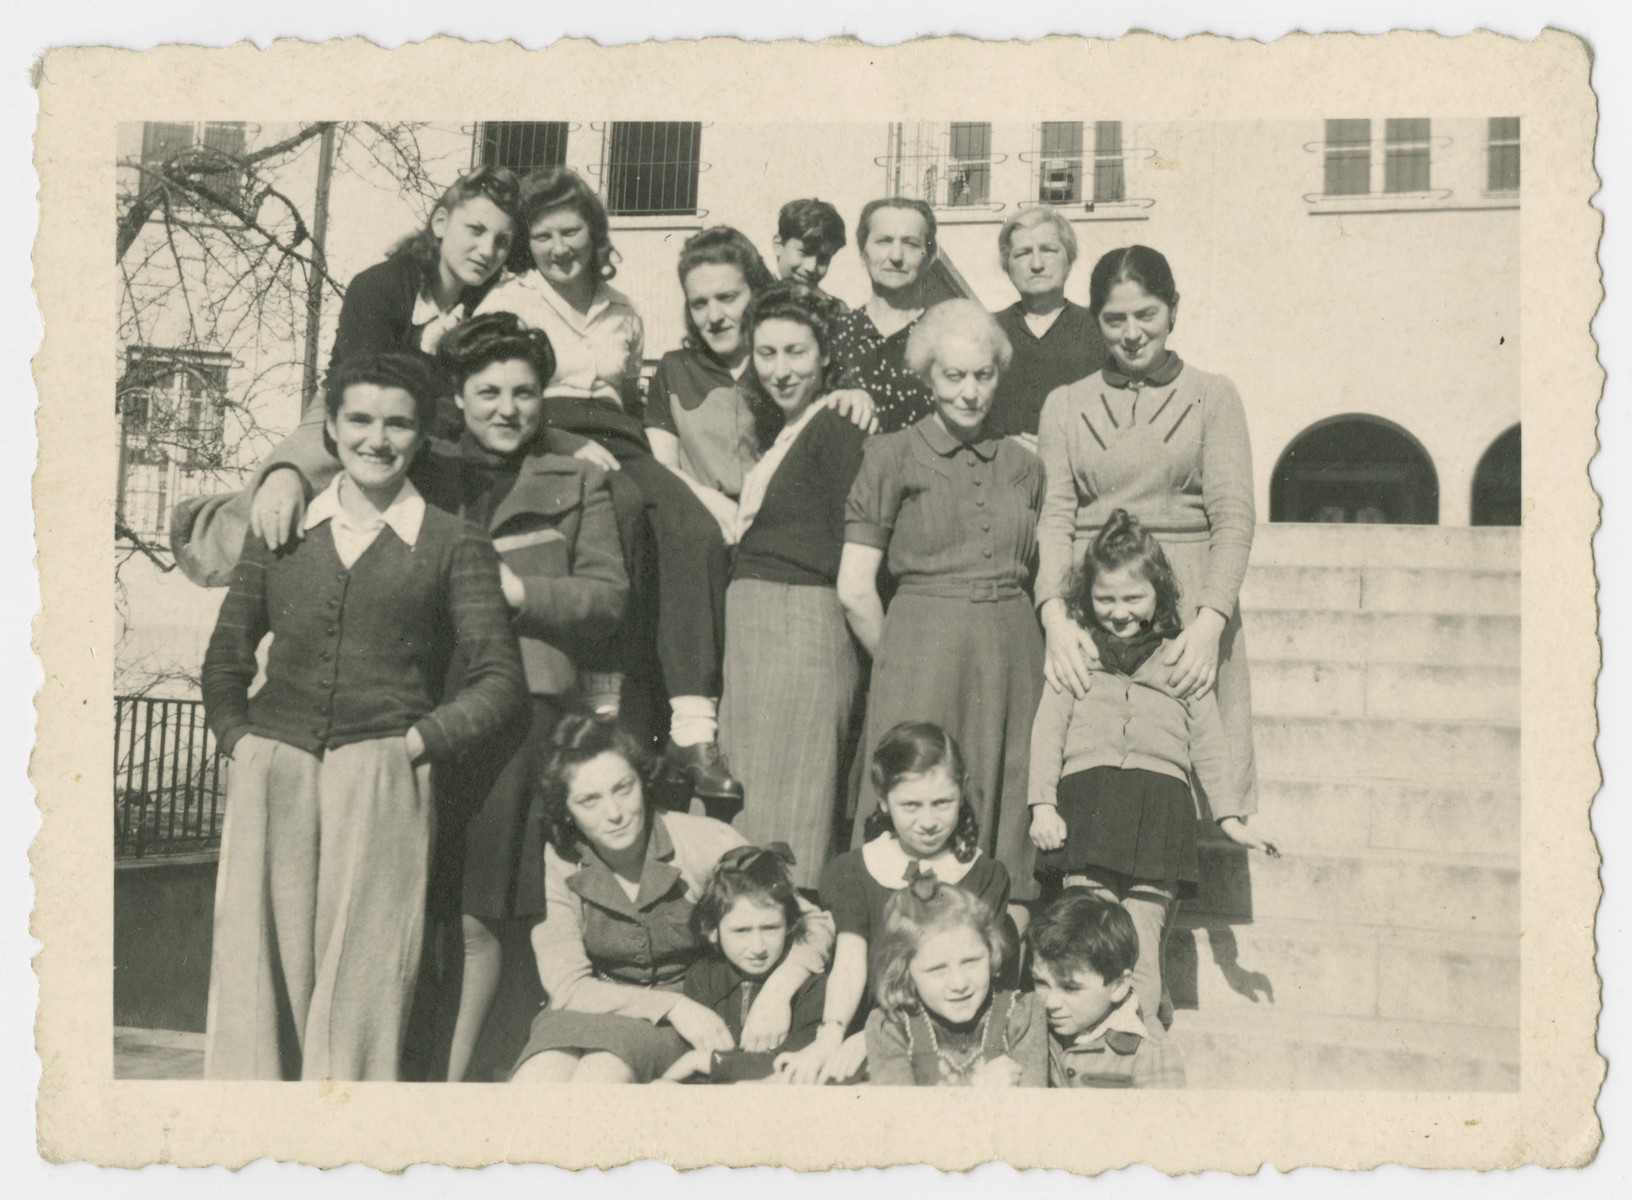 Group portrait of women and girls standing on the steps of what probably is the Liebenau internment camp for foreign nationals.  Pictured on the far right are Rywa Roth with her daughter Anna.